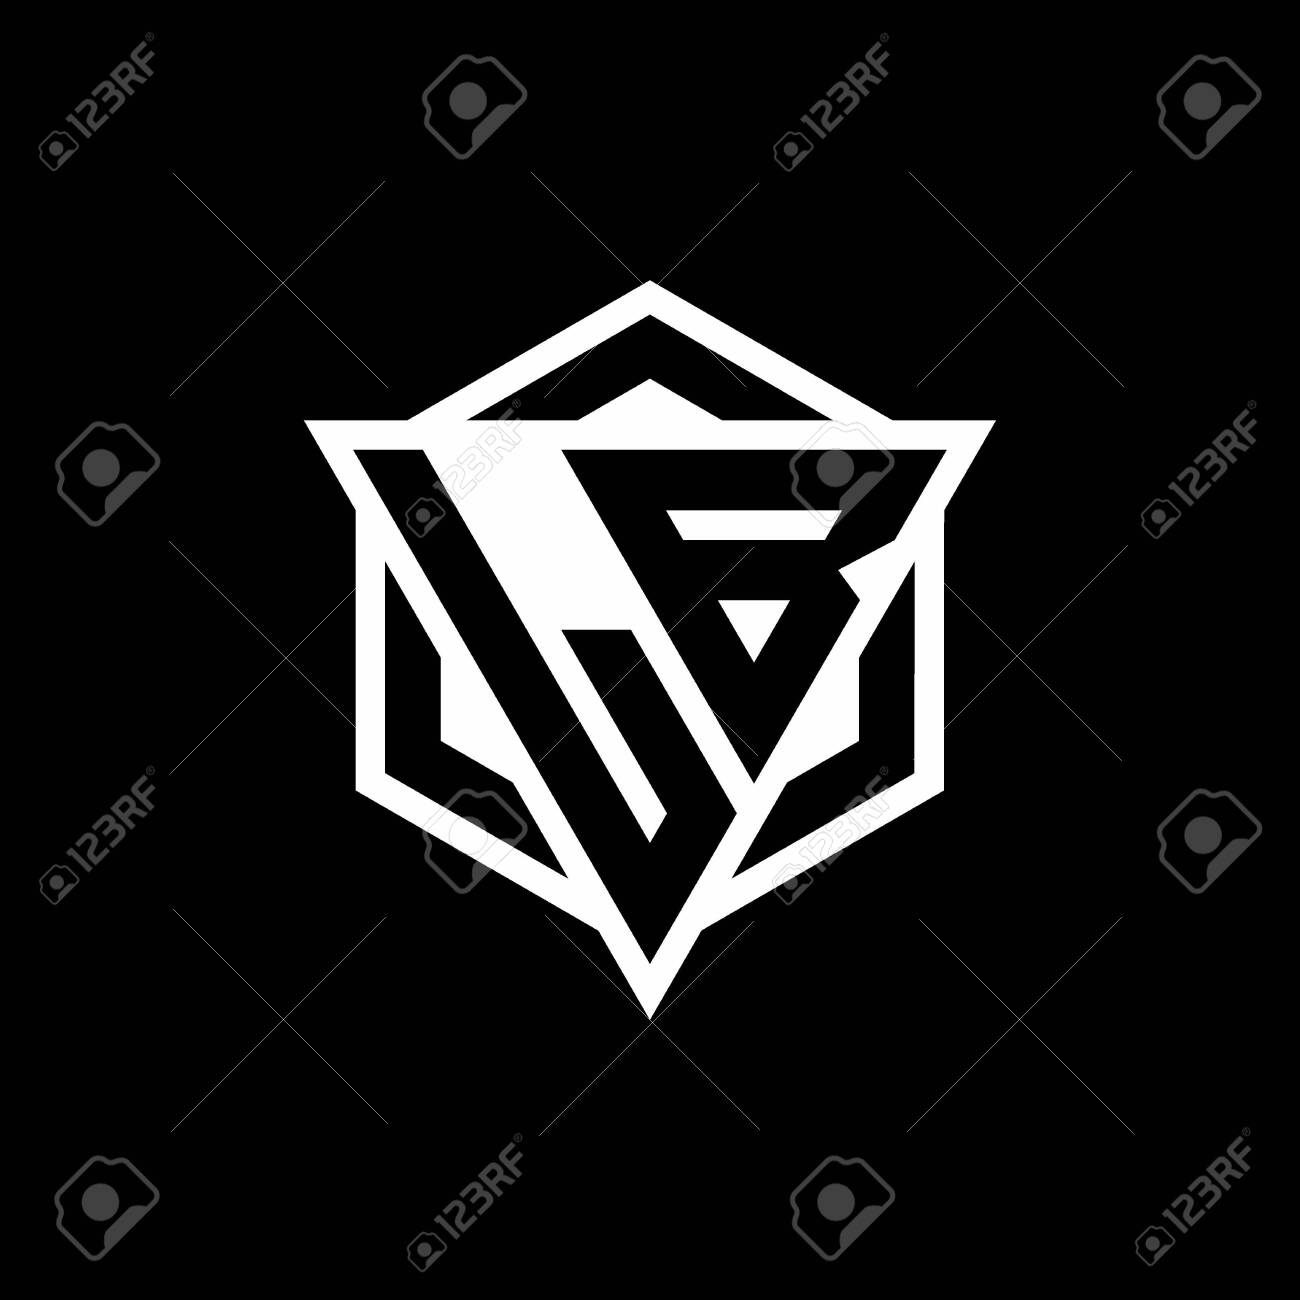 Lb Monogram With Triangle And Hexagon Shape Combination Isolated Royalty Free Cliparts Vectors And Stock Illustration Image 144016412